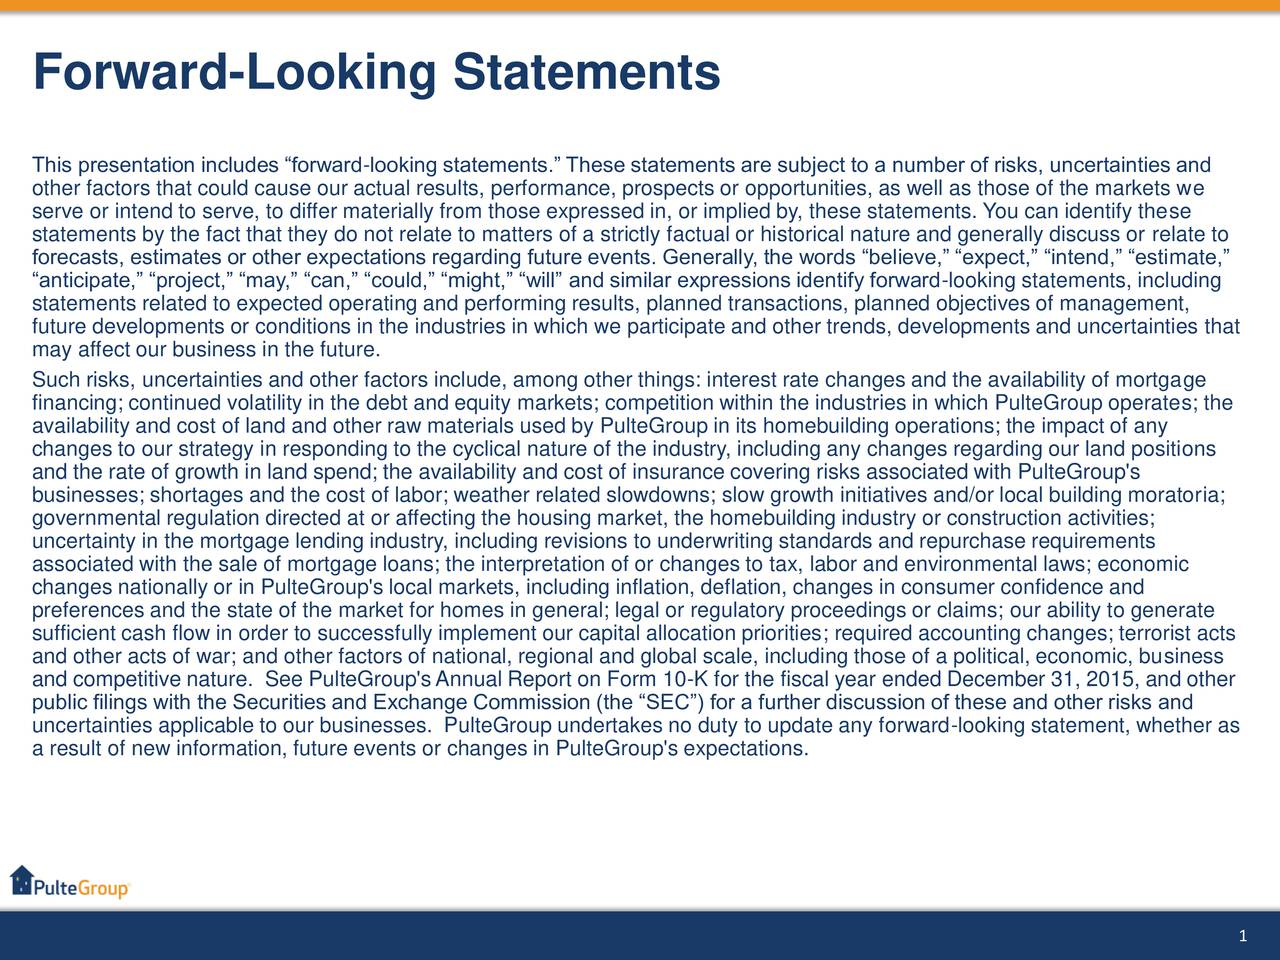 This presentation includes forward-looking statements. These statements are subject to a number of risks, uncertainties and other factors that could cause our actual results, performance, prospects or opportunities, as well as those of the markets we serve or intend to serve, to differ materially from those expressed in, or implied by, these statements. You can identify these statements by the fact that they do not relate to matters of a strictly factual or historical nature and generally discuss or relate to forecasts, estimates or other expectations regarding future events. Generally, the words believe, expect, intend, estimate, anticipate, project, may, can, could, might, will and similar expressions identify forward-looking statements, including statements related to expected operating and performing results, planned transactions, planned objectives of management, future developments or conditions in the industries in which we participate and other trends, developments and uncertainties that may affect our business in the future. Such risks, uncertainties and other factors include, among other things: interest rate changes and the availability of mortgage financing; continued volatility in the debt and equity markets; competition within the industries in which PulteGroup operates; the availability and cost of land and other raw materials used by PulteGroup in its homebuilding operations; the impact of any changes to our strategy in responding to the cyclical nature of the industry, including any changes regarding our land positions and the rate of growth in land spend; the availability and cost of insurance covering risks associated with PulteGroup's businesses; shortages and the cost of labor; weather related slowdowns; slow growth initiatives and/or local building moratoria; governmental regulation directed at or affecting the housing market, the homebuilding industry or construction activities; uncertainty in the mortgage lending industry, including revisions